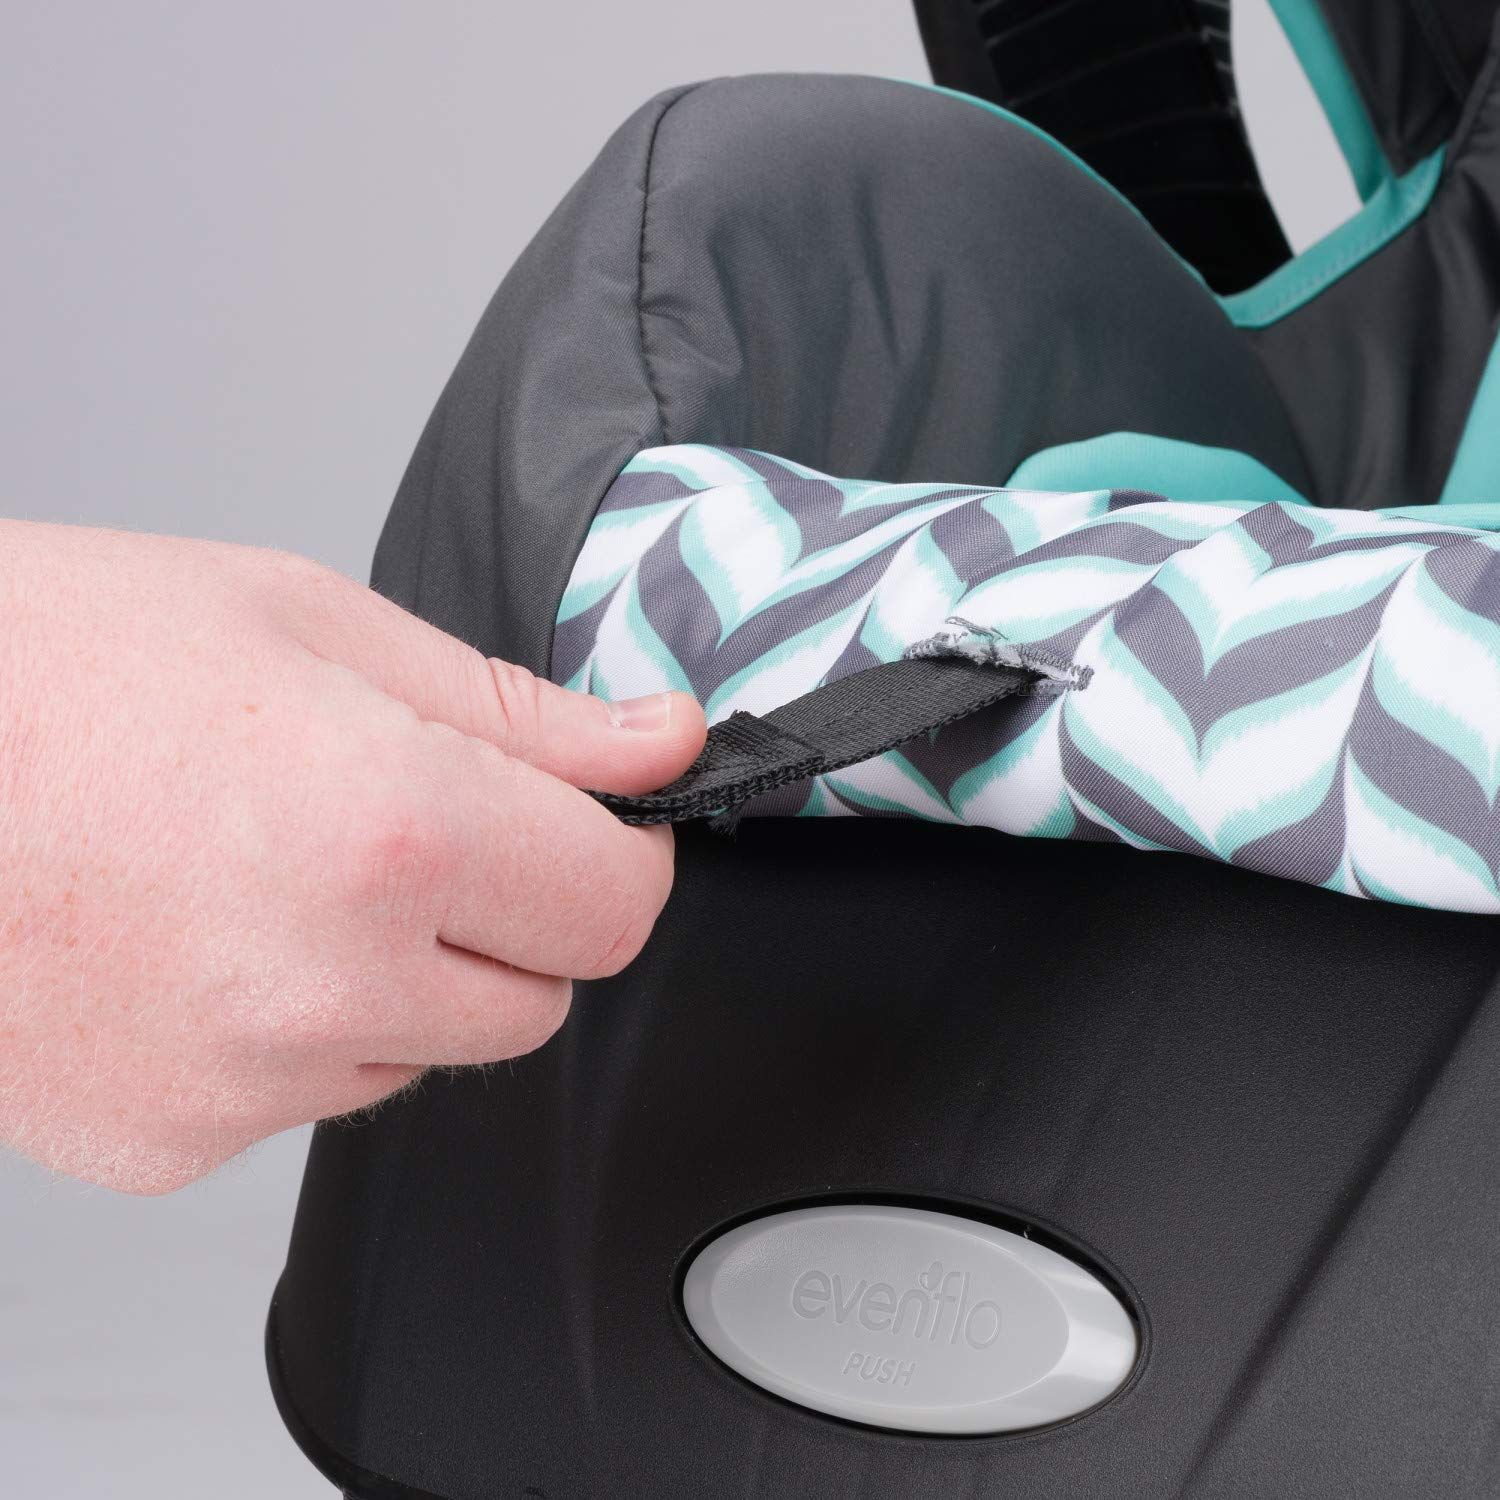 Evenflo Vive Travel System with Embrace Infant Car Seat, Spearmint Spree by Evenflo (Image #5)